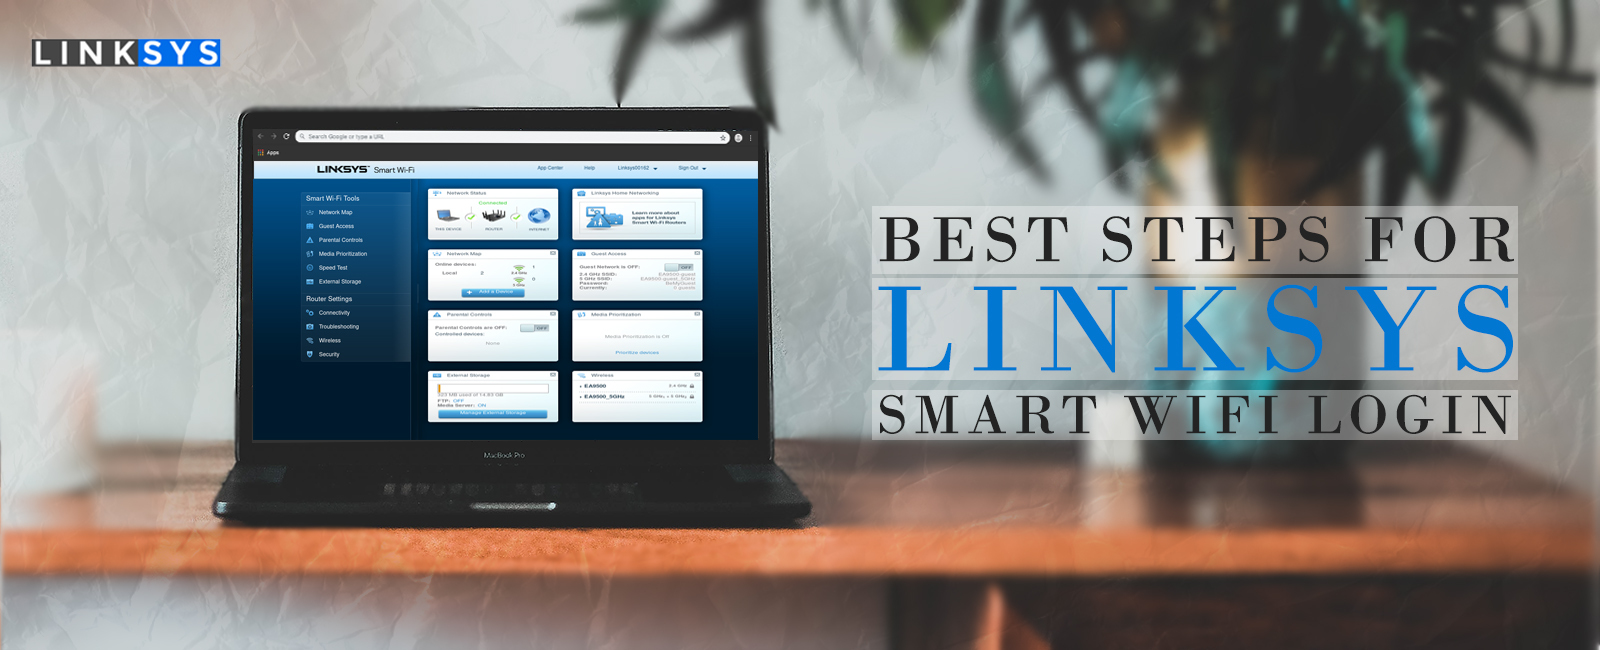 Easy Steps for Linksys router smart wi-fi login